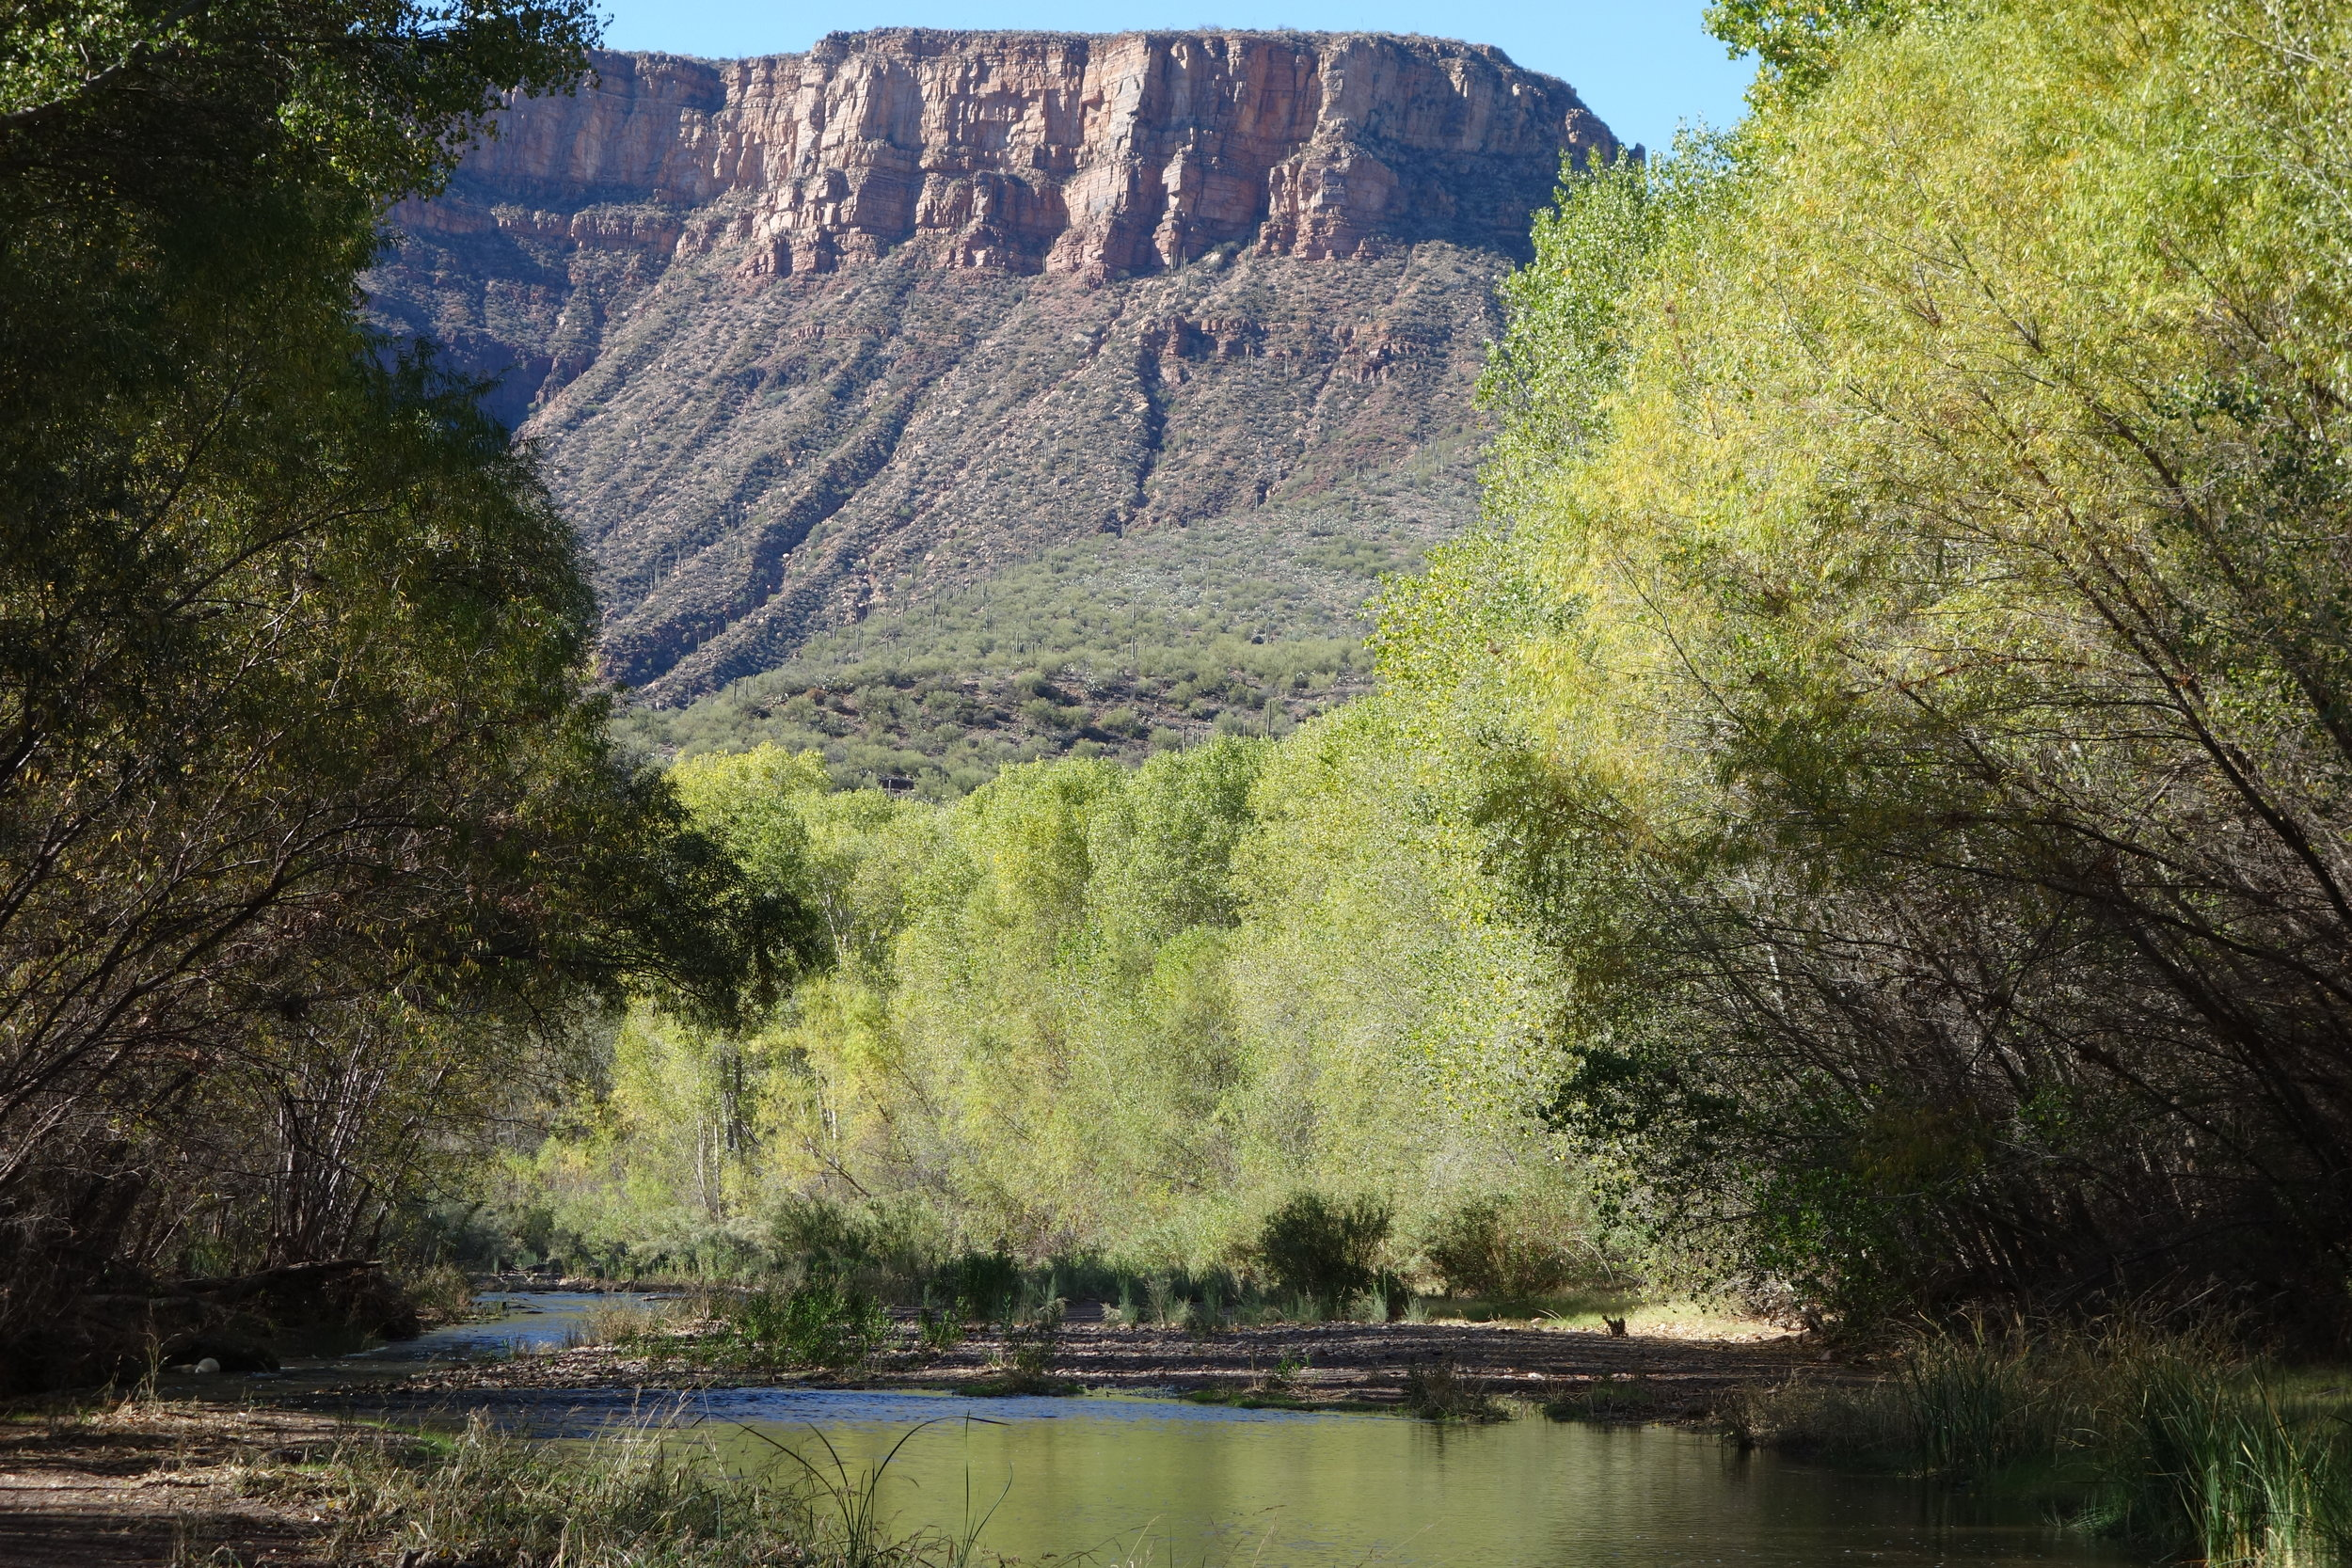 In the canyon, the creek is lined with mature cottonwood, sycamore, and willow trees, offering shade and shelter.